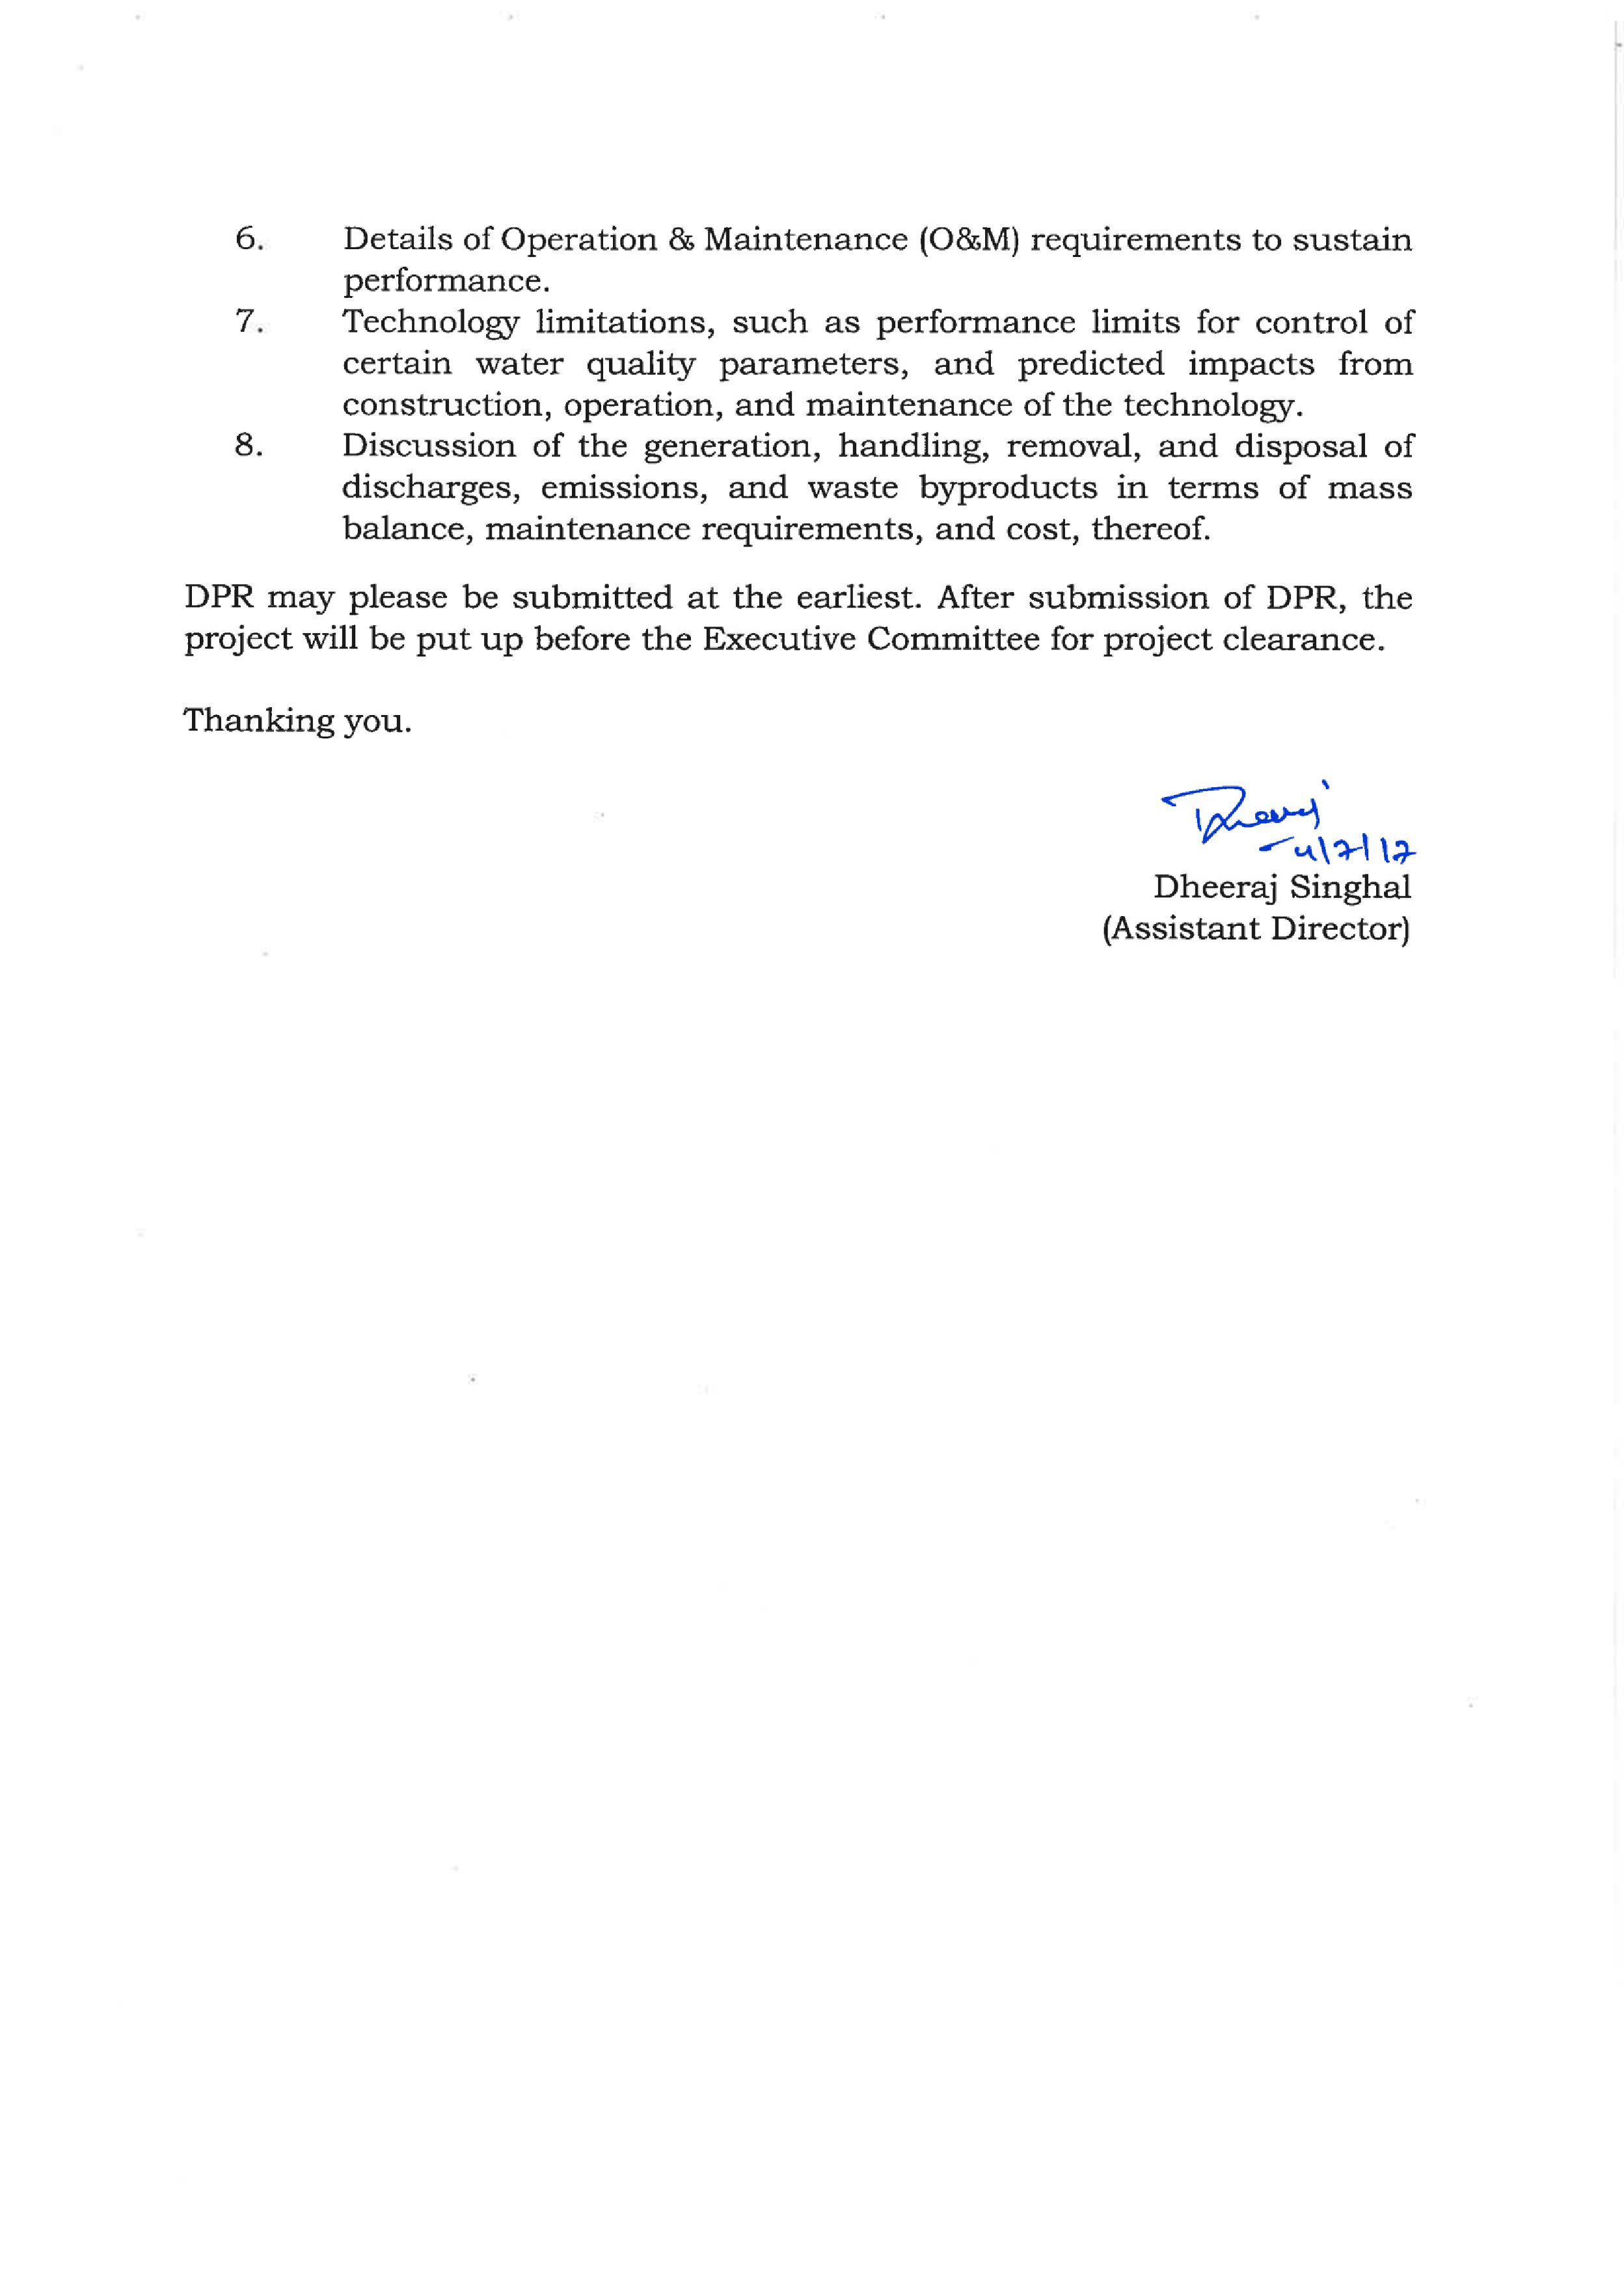 NMCG Technology Approval letter_2